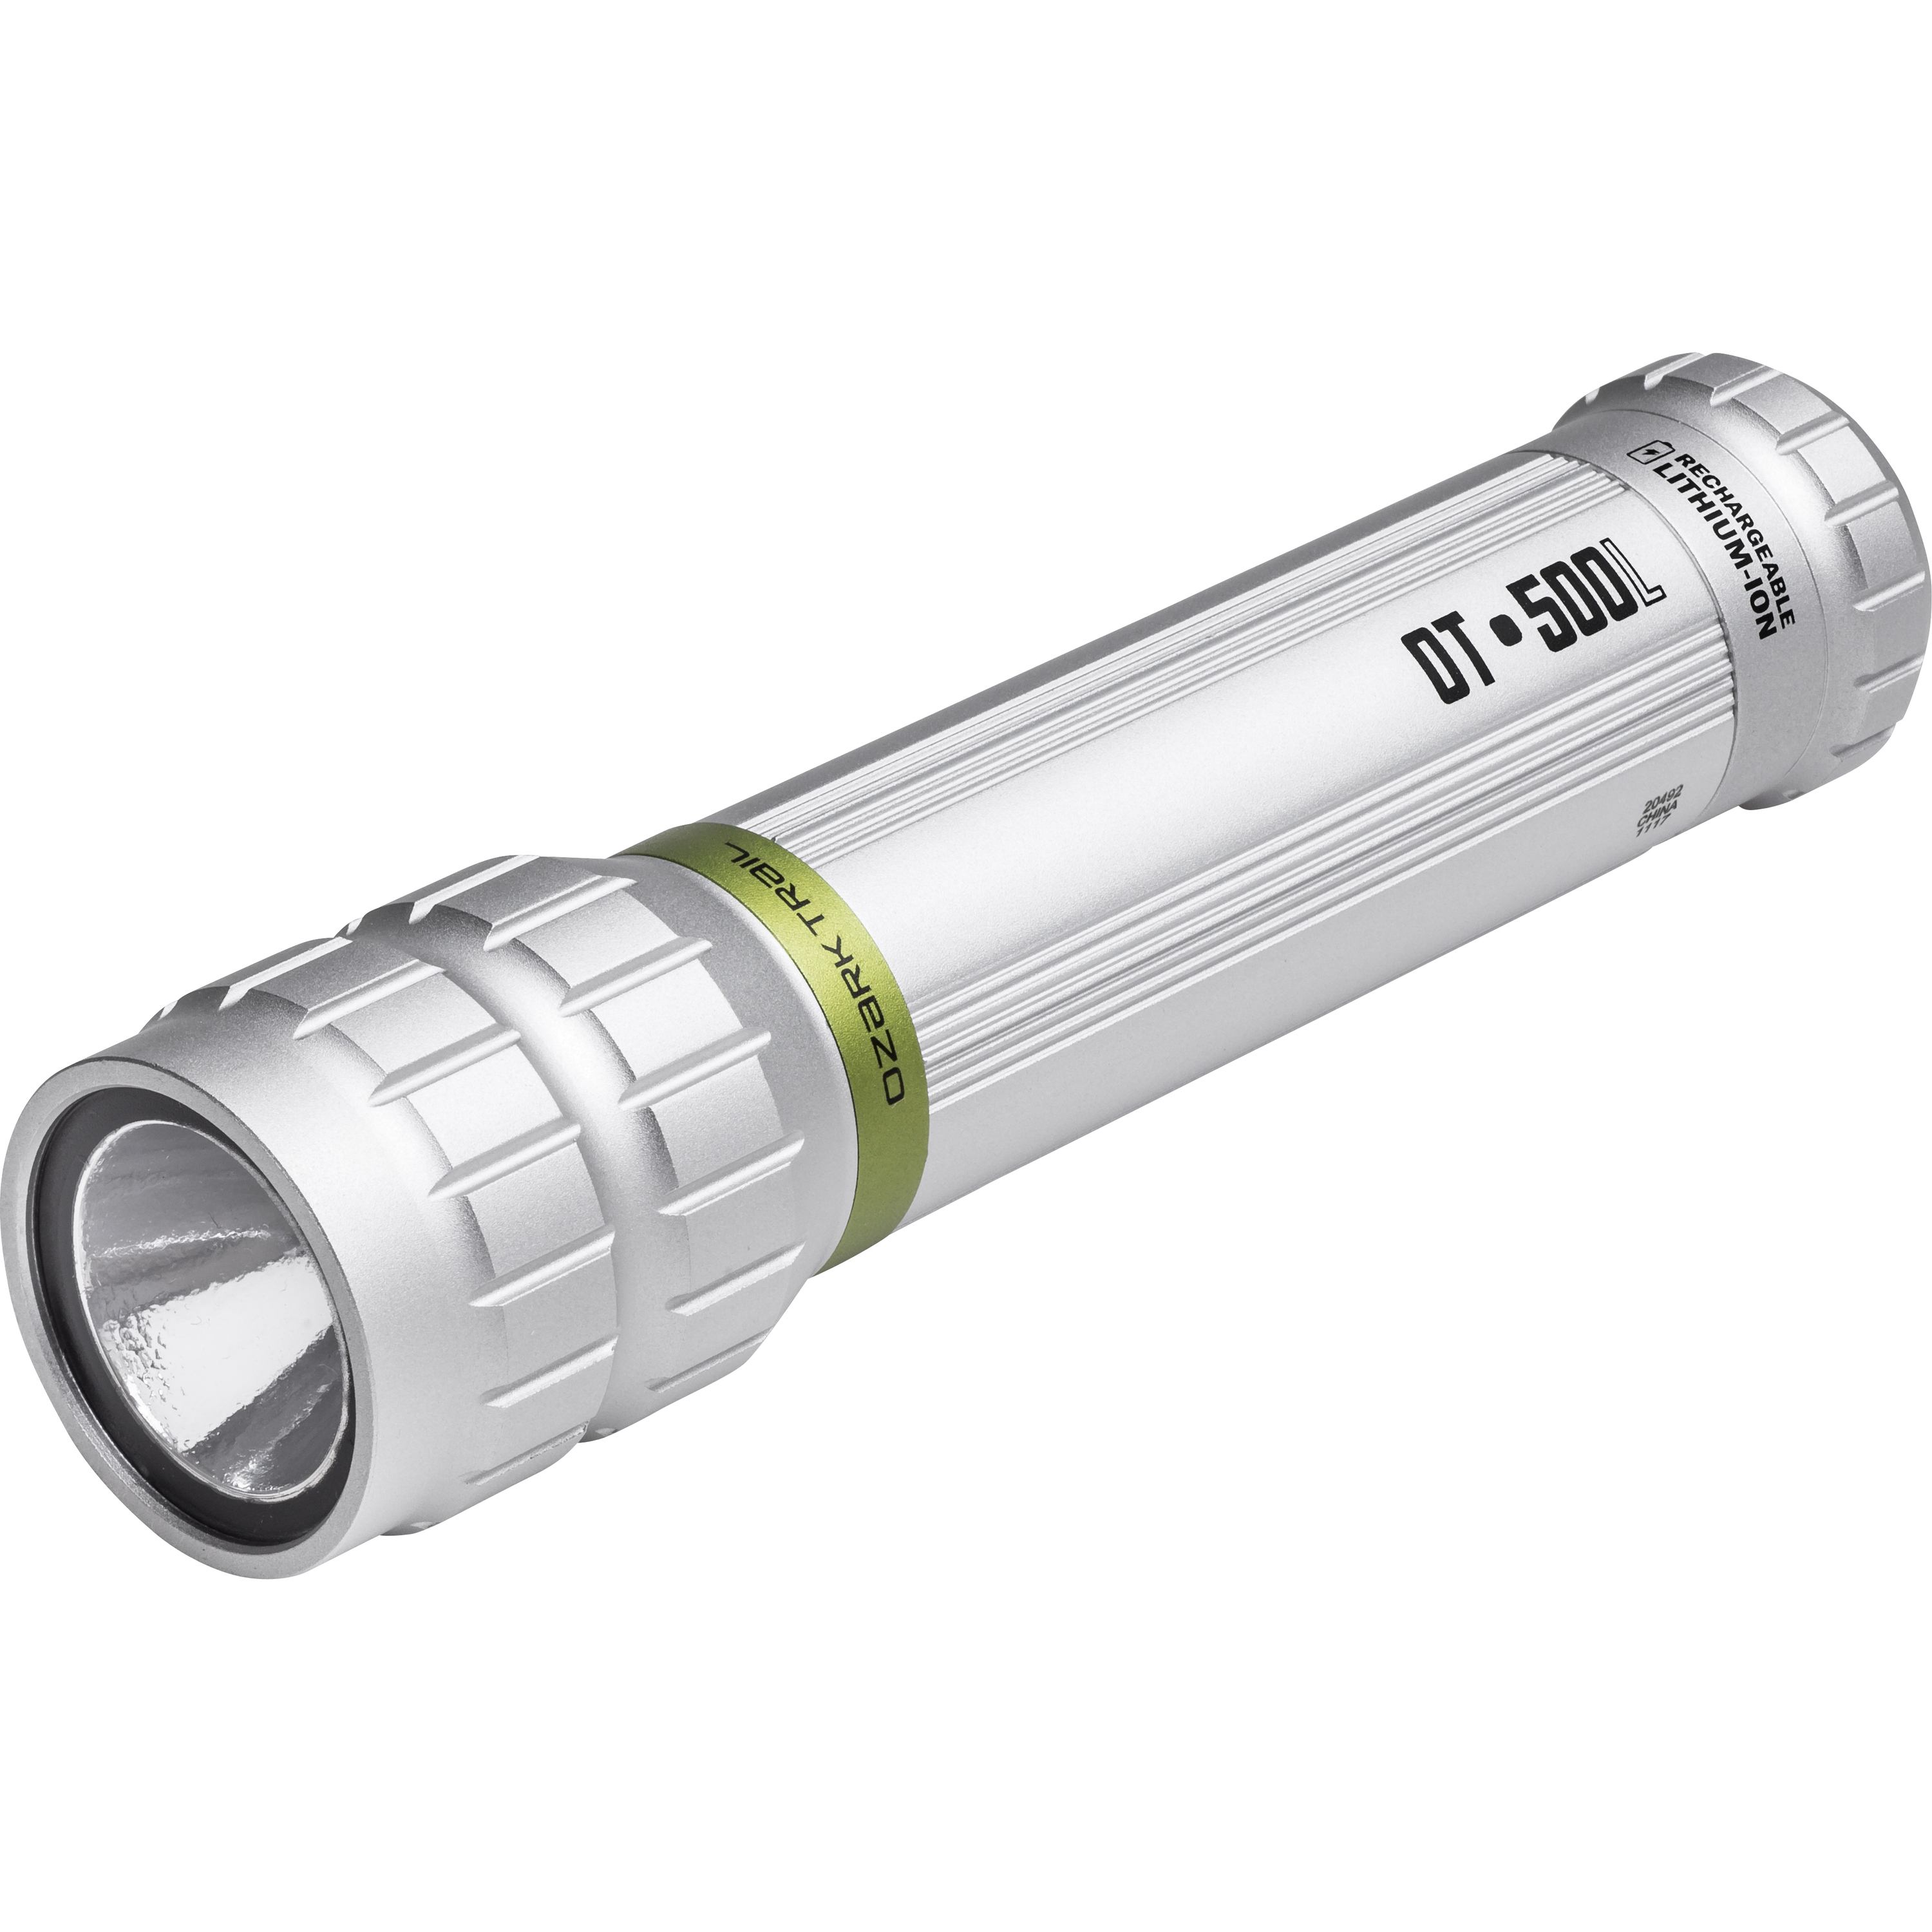 Ozark Trail Outdoor Equipment 500 Lumen Rechargeable Flashlight